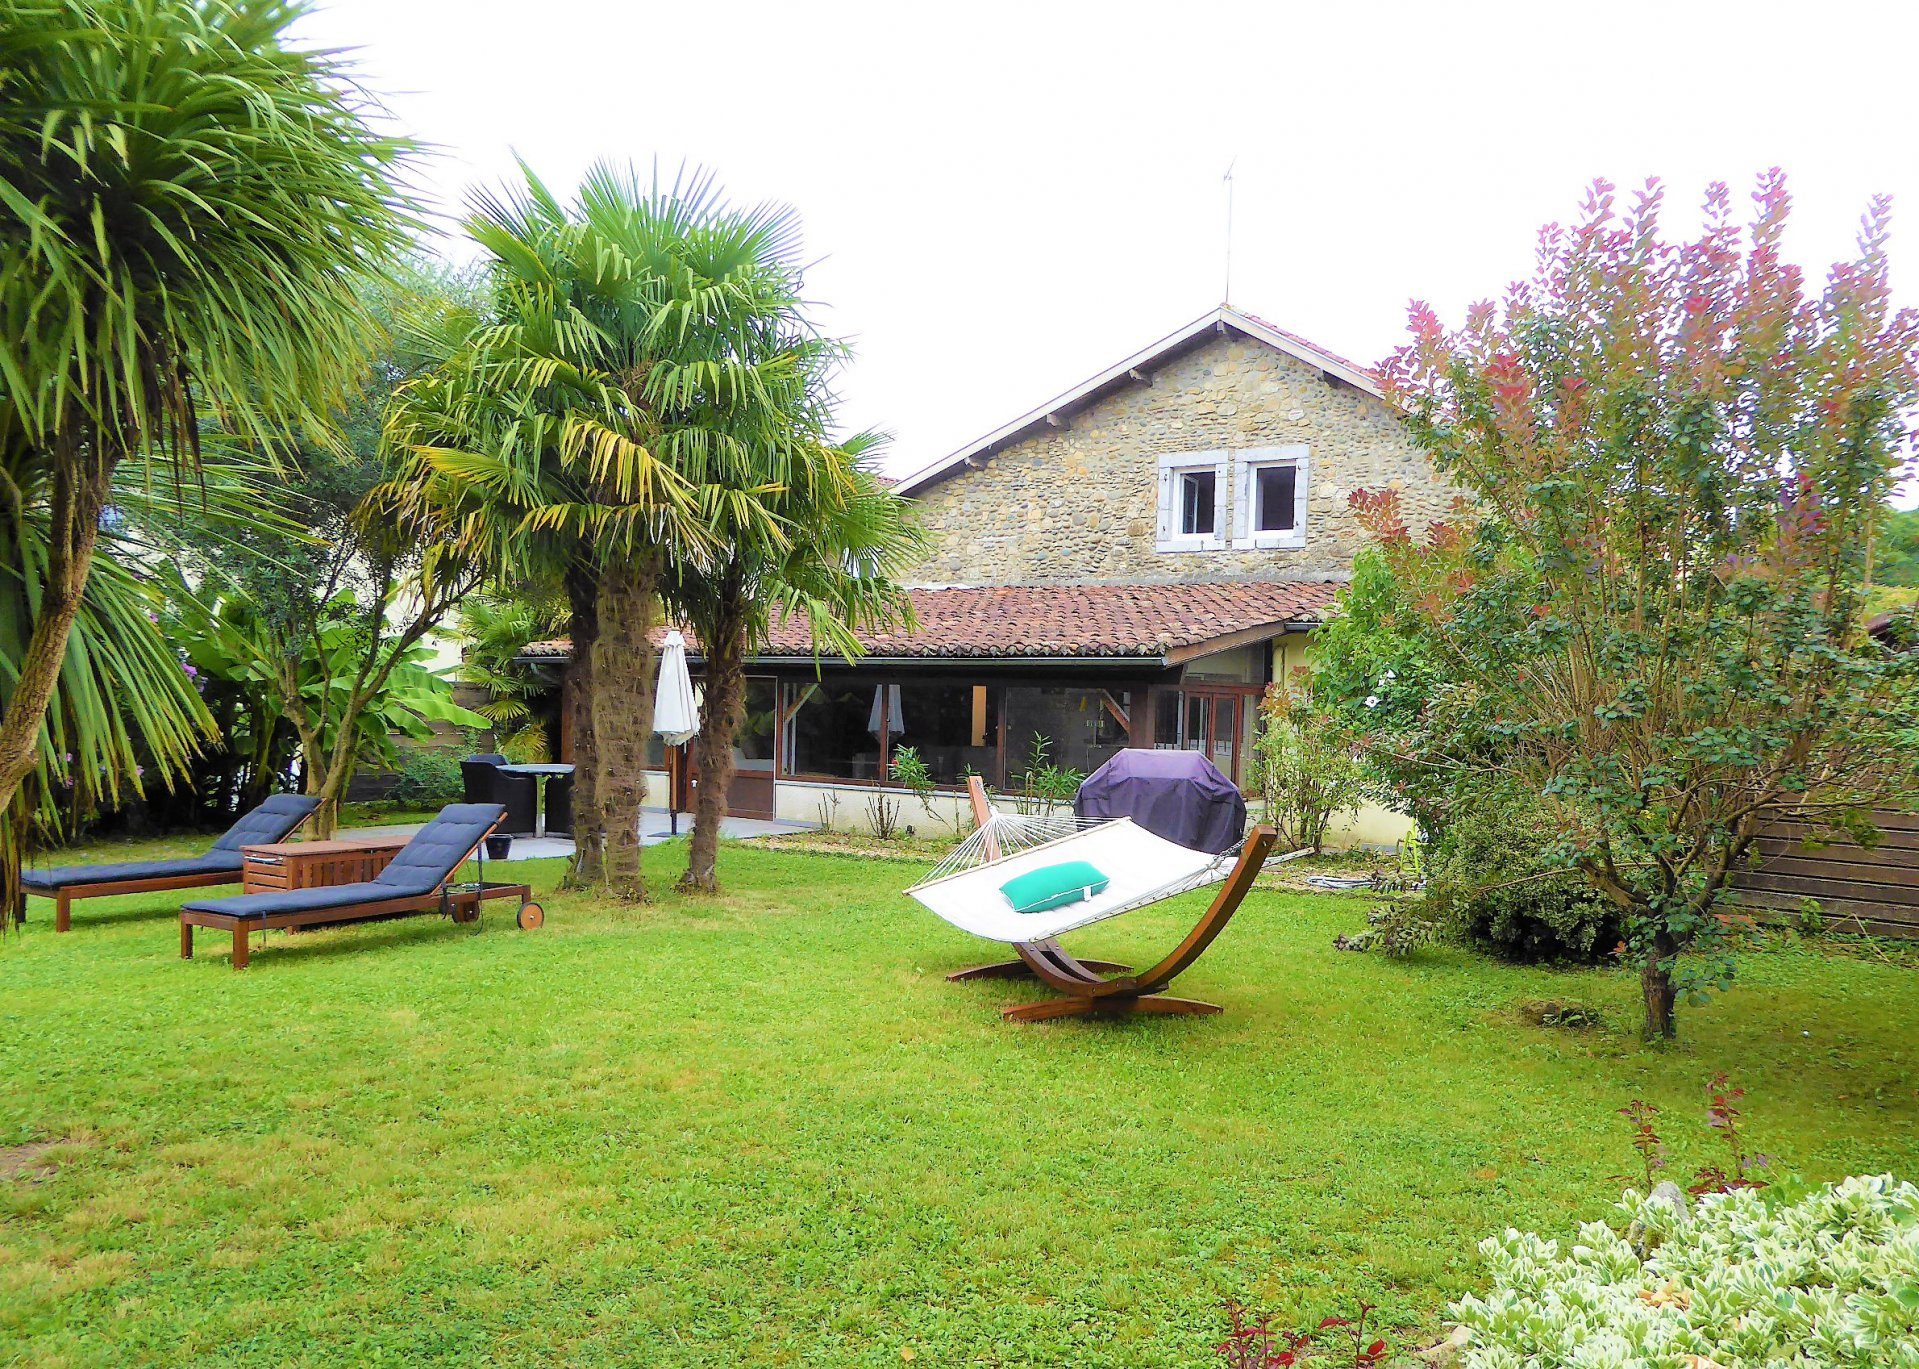 NEAR SALIES DE BEARN- Large Béarnaise village house in excellent condition with 2500m² of garden